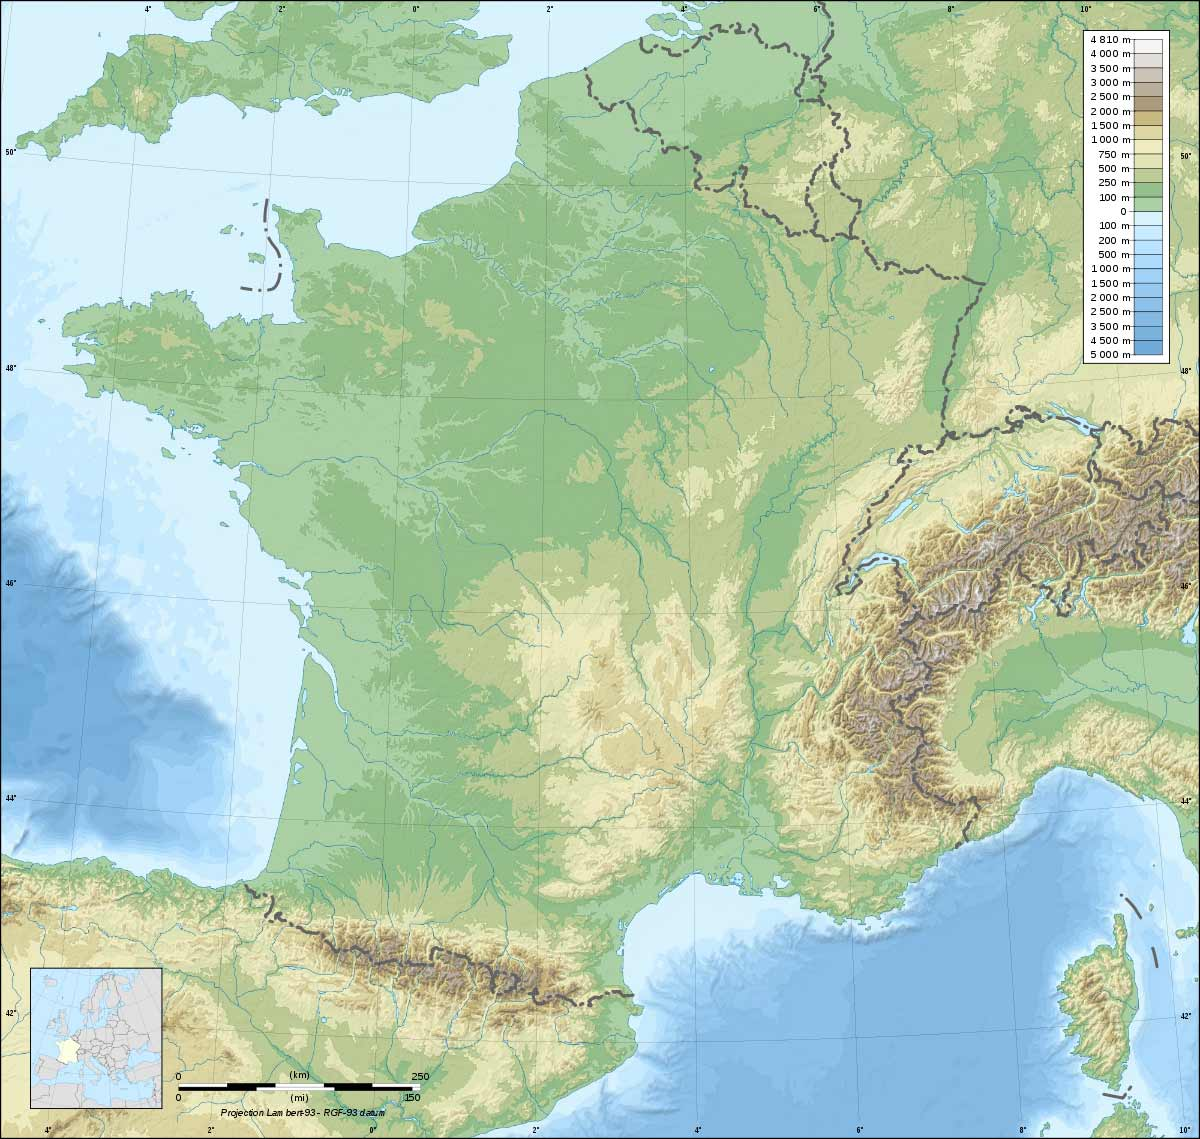 France Topographic Blank Map